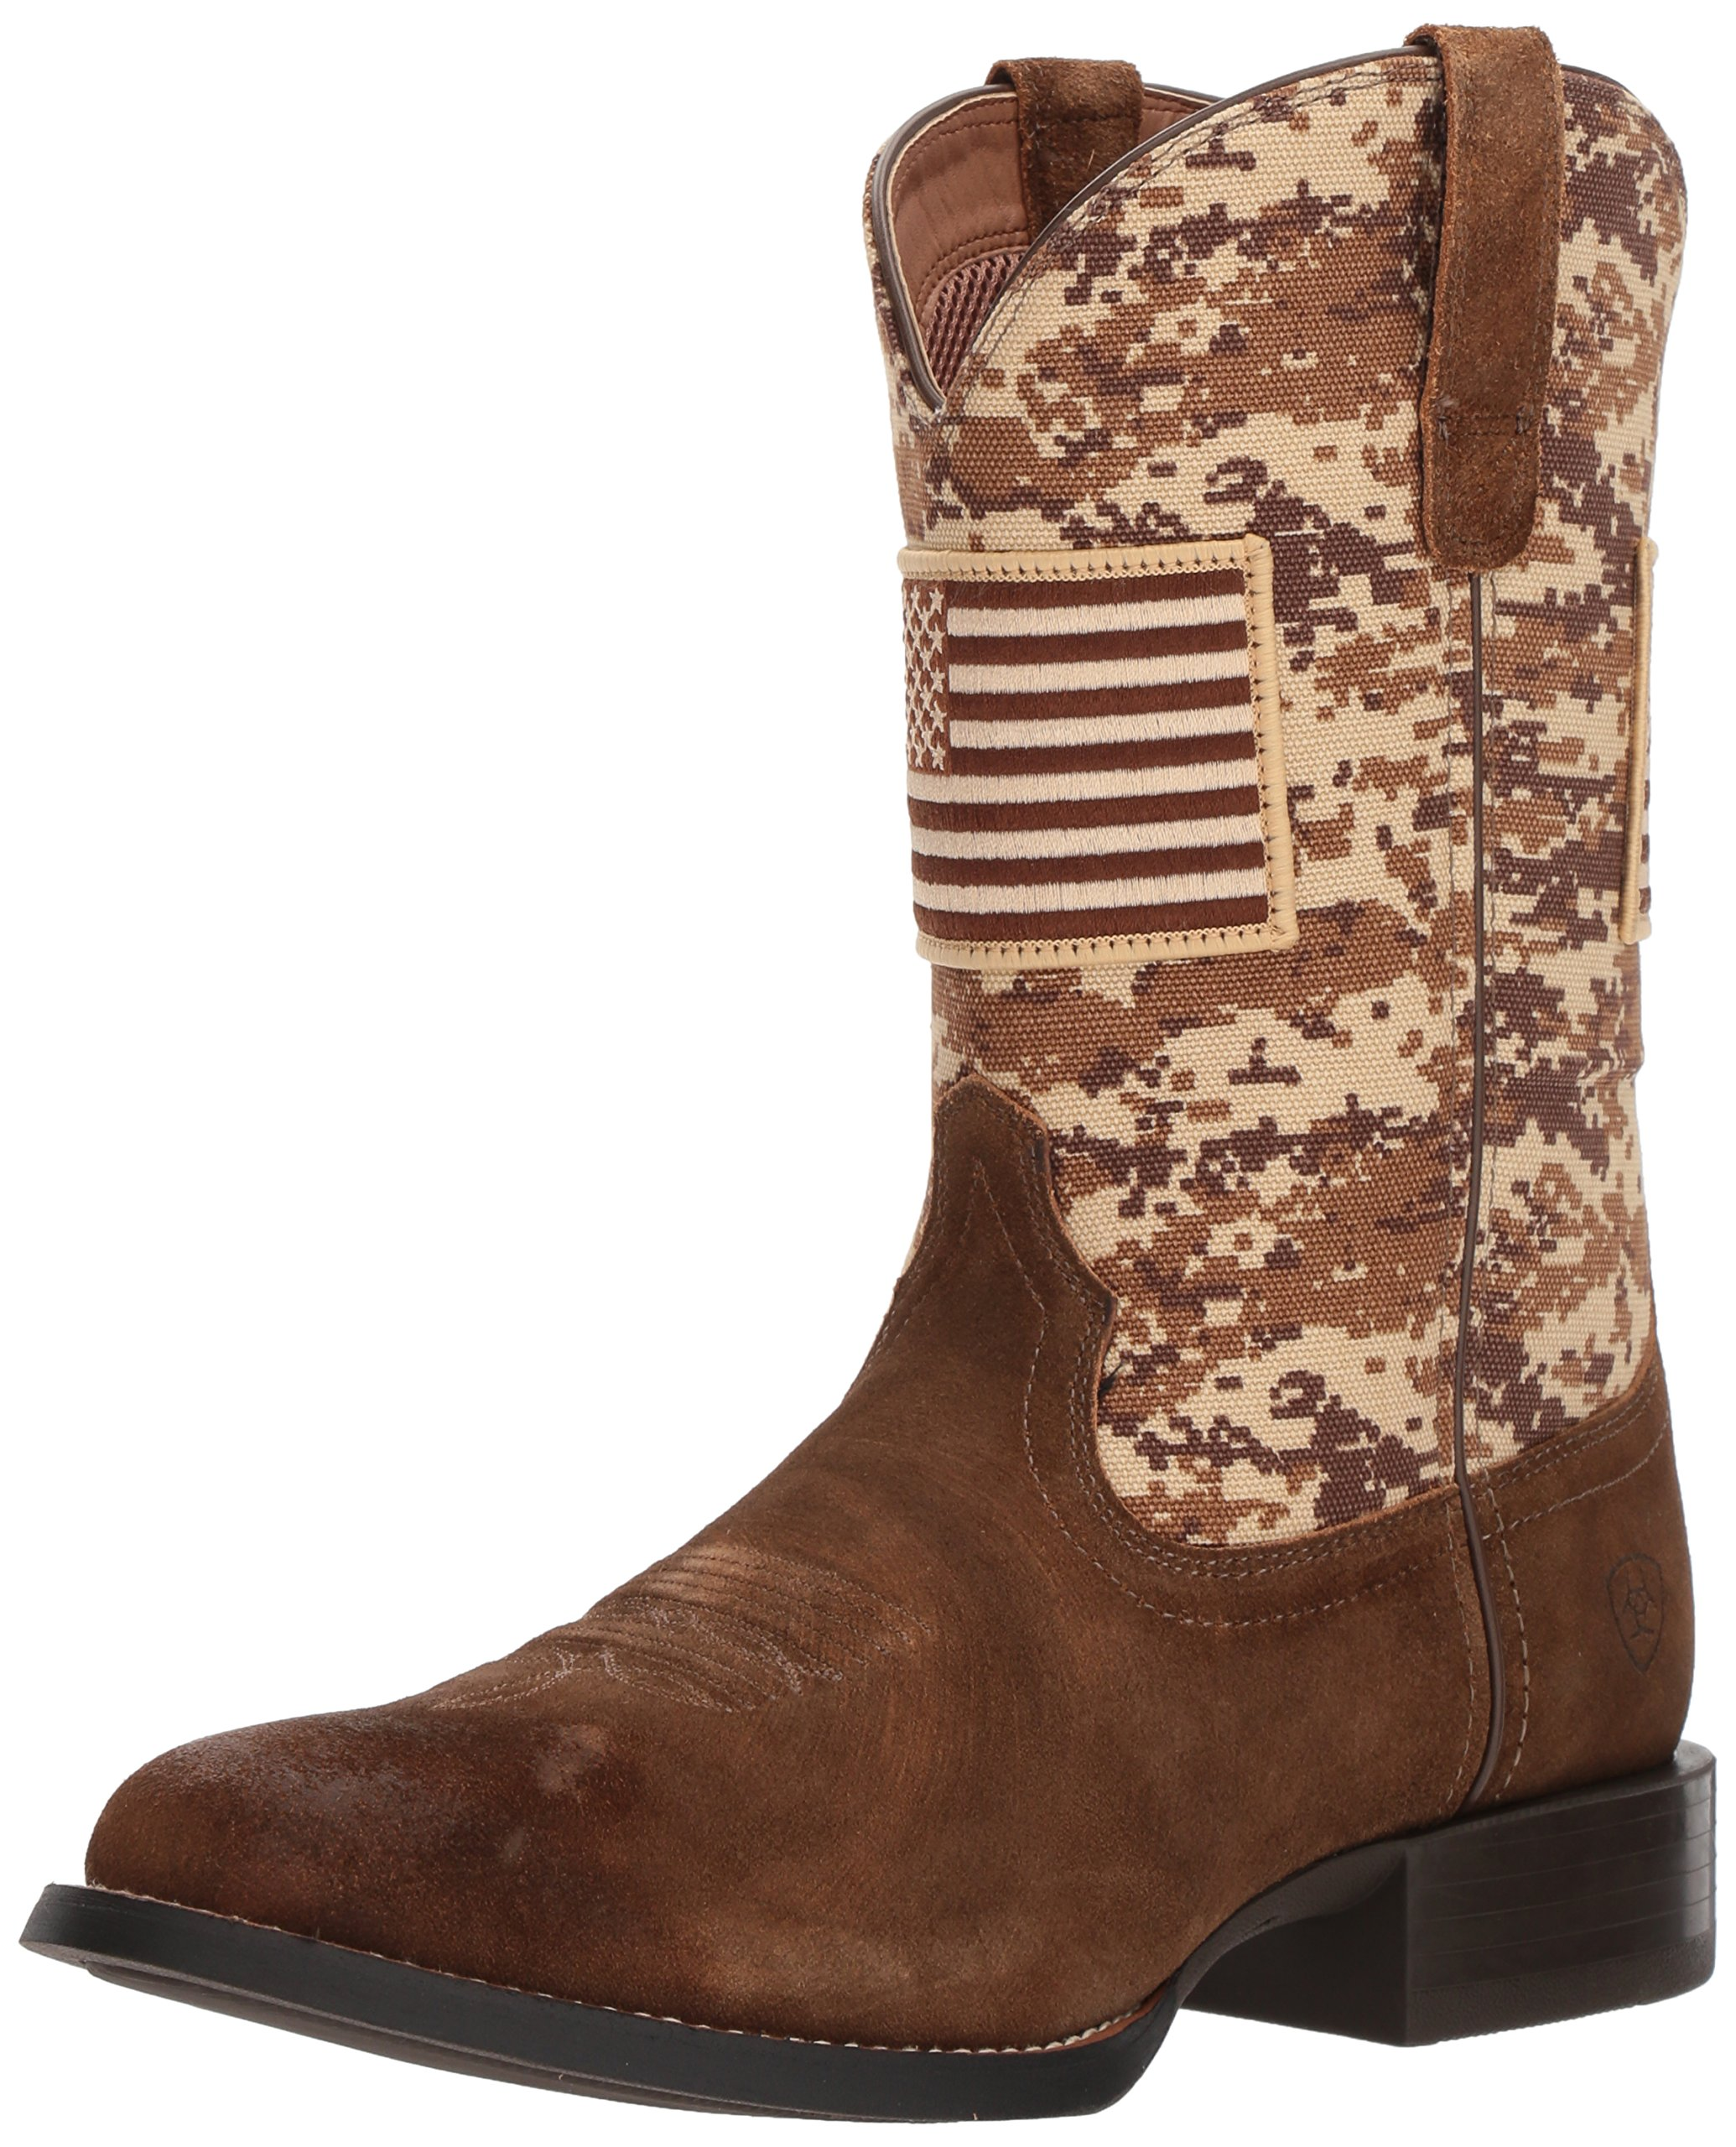 Ariat Men's Sport Patriot Round Toe Western Boot, Antique Mocha Washed Suede/Sand camo Print, 9 D US